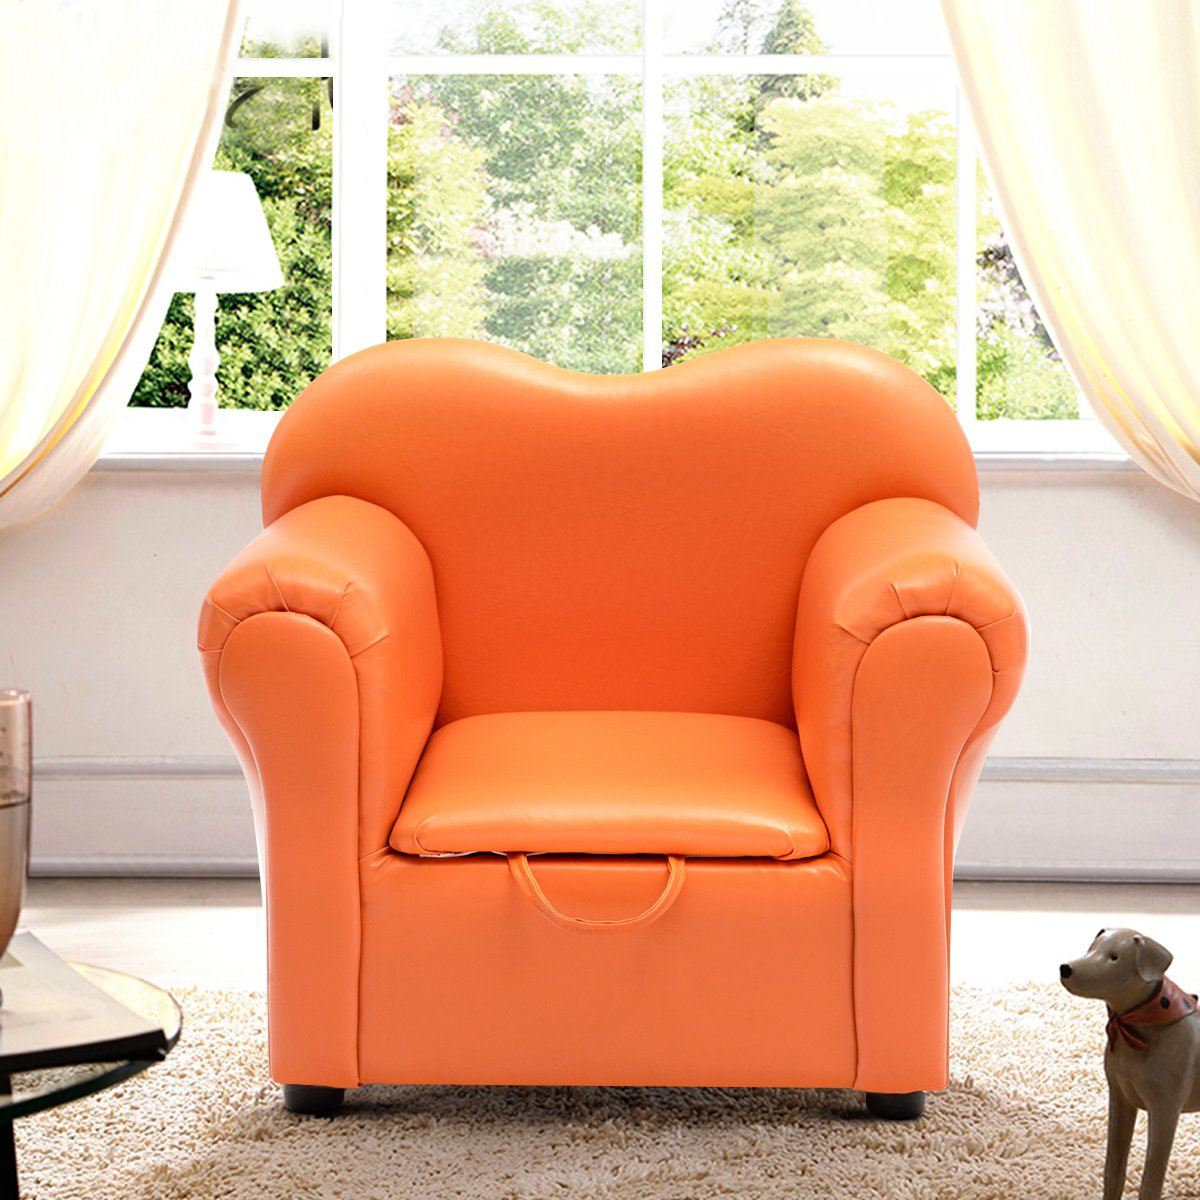 Costzon Kids Sofa, PU Leather Upholstered Armrest, Sturdy Wood Construction, Toddler Chair (Orange Sofa with Storage Box) by Costzon (Image #5)